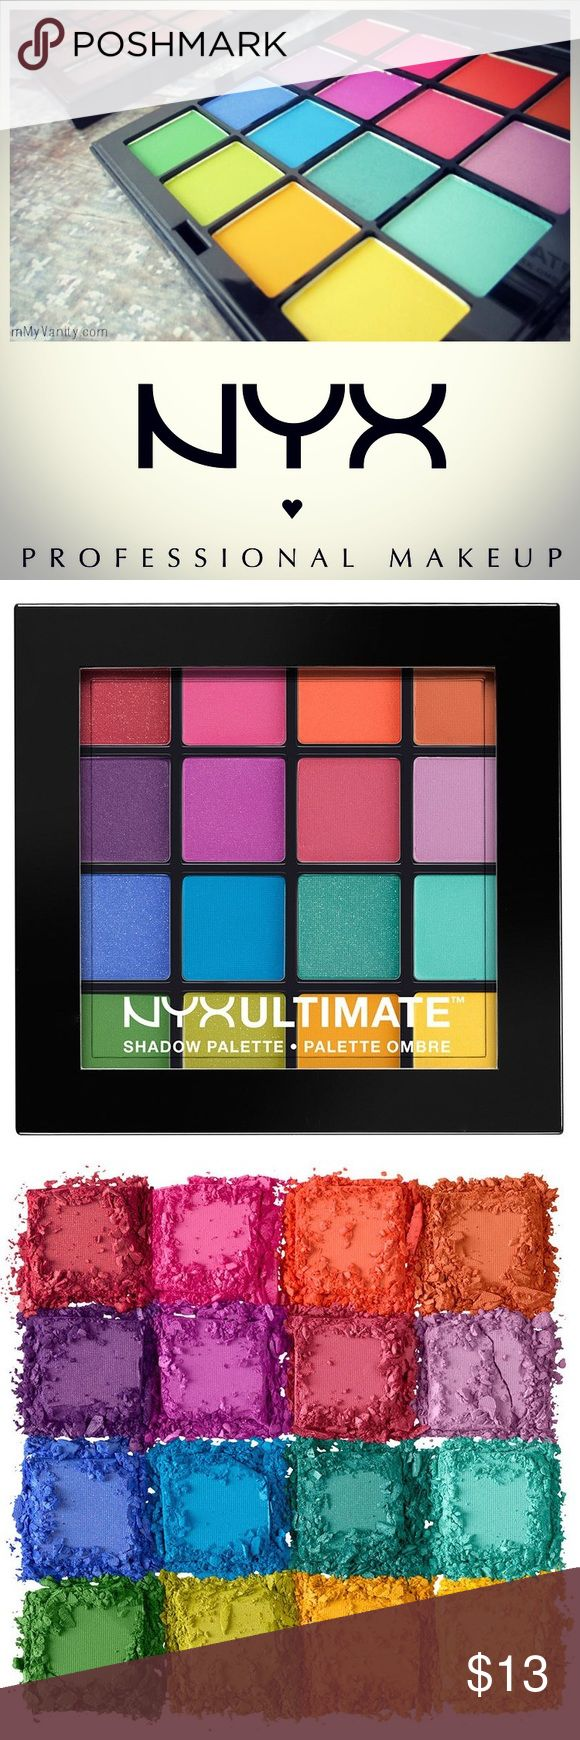 SALENEW NYX Cosmetics Brights Ultimate Palette FINAL PRICE BRAND NEW, unopened NYX Ultimate Shadow Palette palette in the 'Brights' color set. Original Retail: $19. Smoke free home.  NYX Cosmetics' Brights Ultimate Shadow Palette features 16 expertly coordinated eye shadows housed in one perfectly portable palette. Available in unique color combinations, each Ultimate Shadow 'Brights' Palette features captivating textures and shades of ultra bright color pops. NYX Makeup Eyeshadow